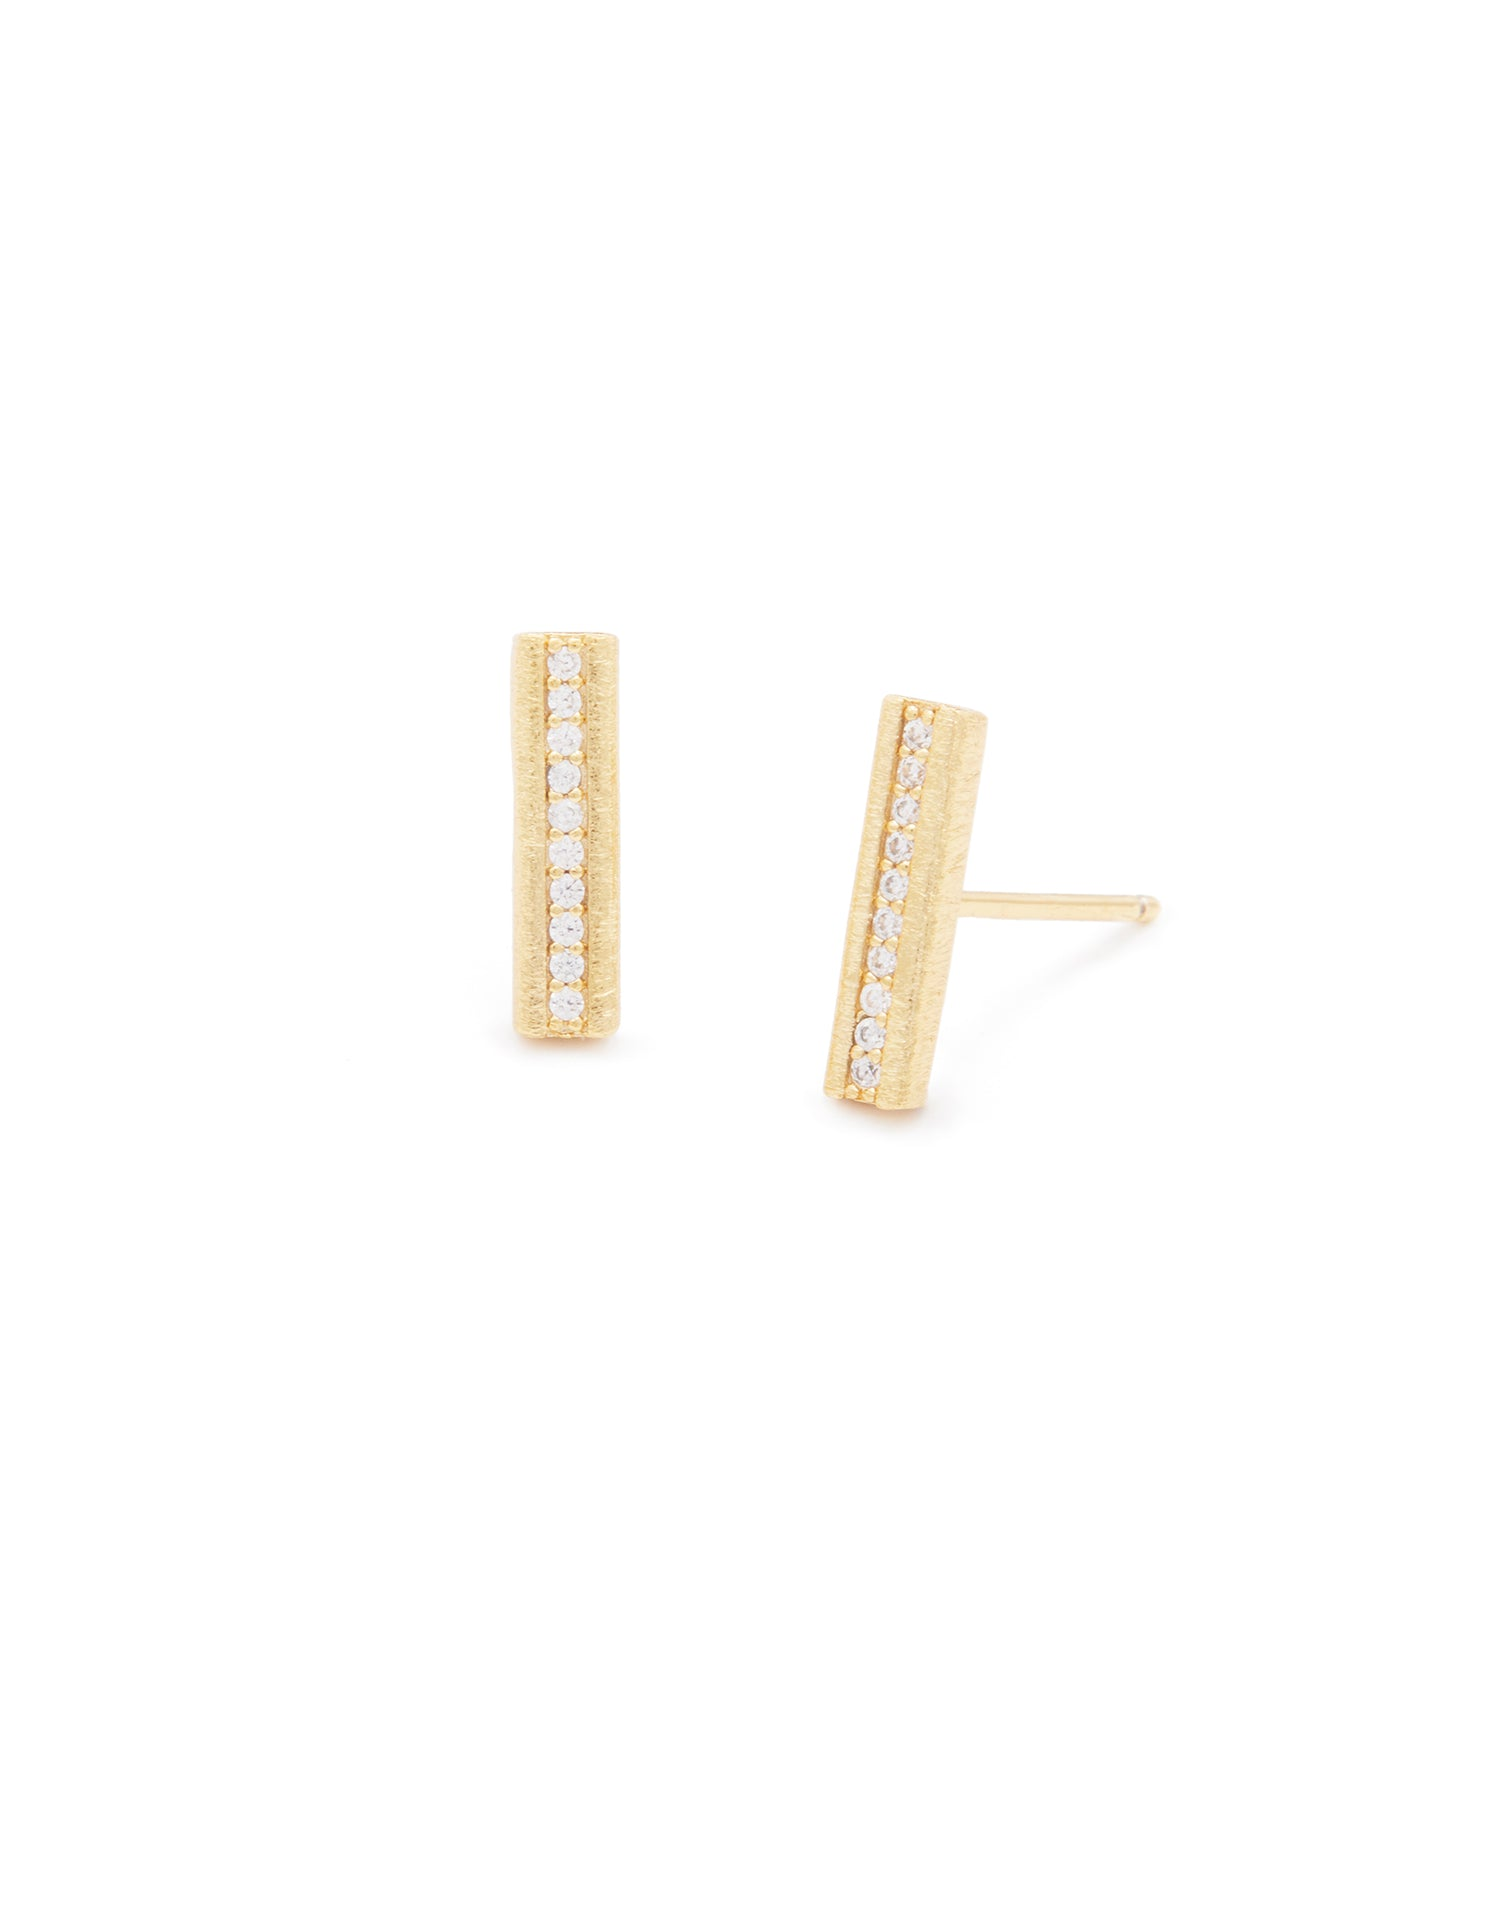 Nia Shimmer Studs in Gold - product view